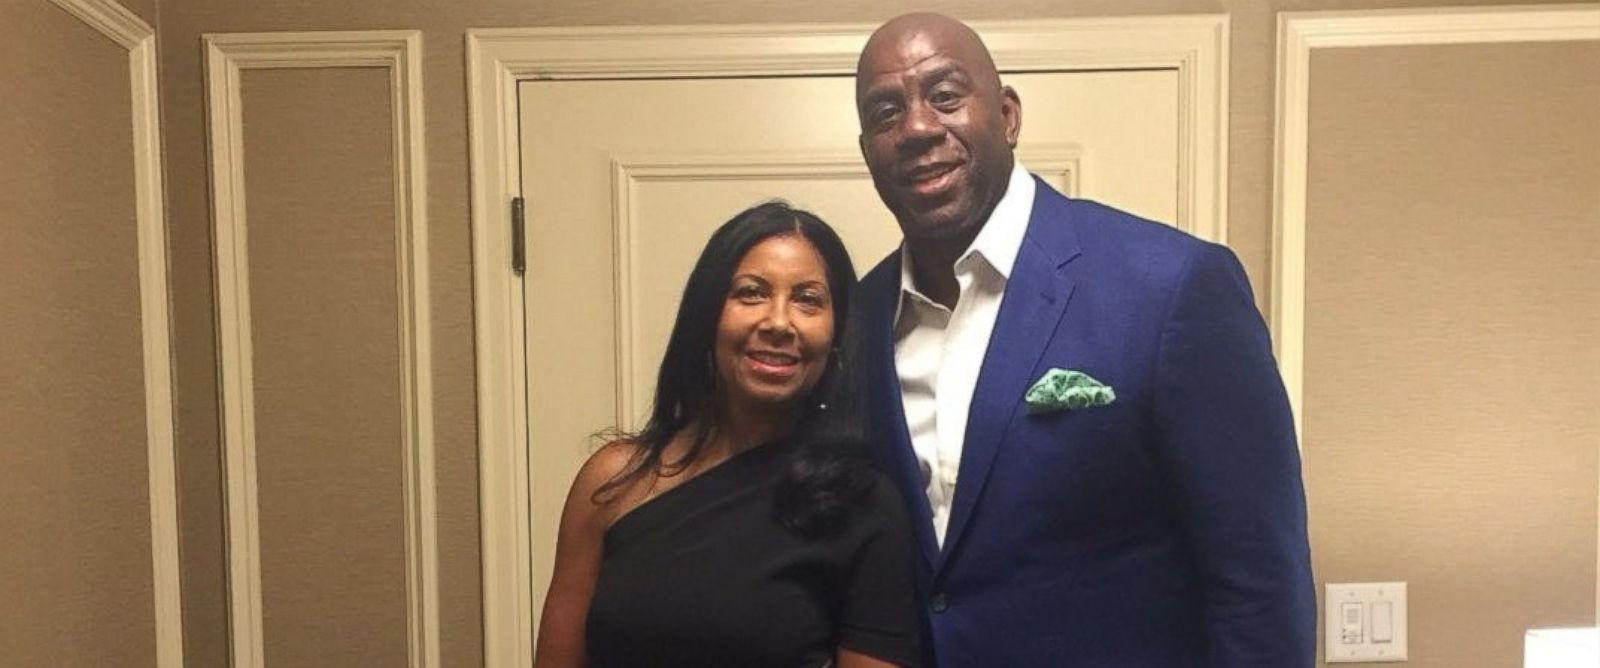 PHOTO: Magic Johnson tweeted this photo of himself and his wife Cookie, before heading to President Barack Obamas 55th birthday party at the White House, on August 5, 2016.